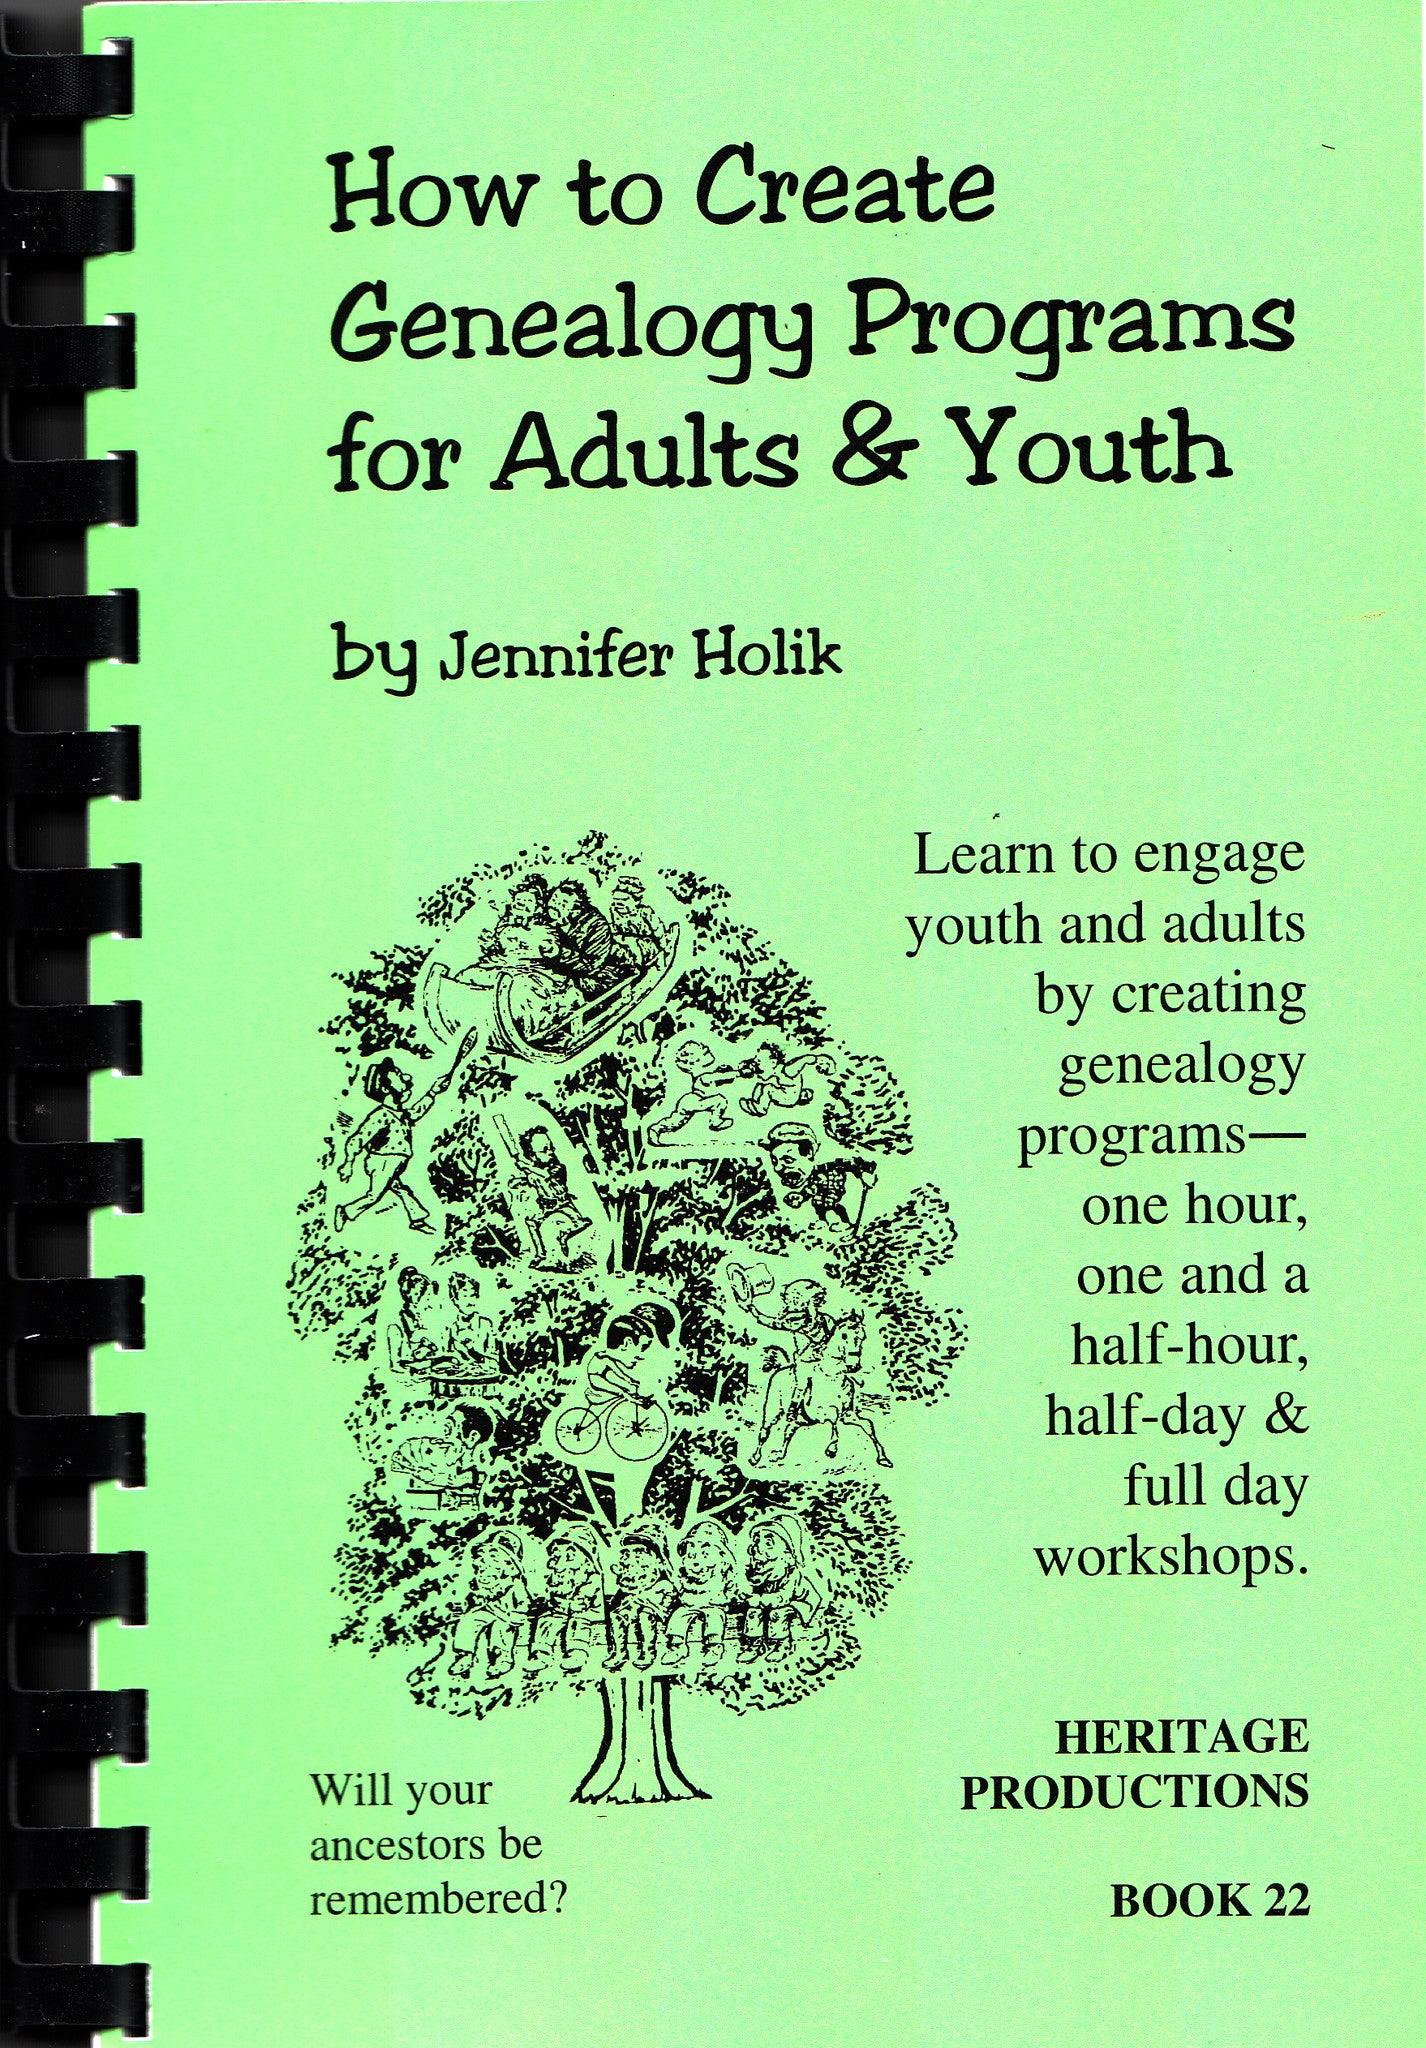 How to Create Genealogy Programs for Adults and Youths